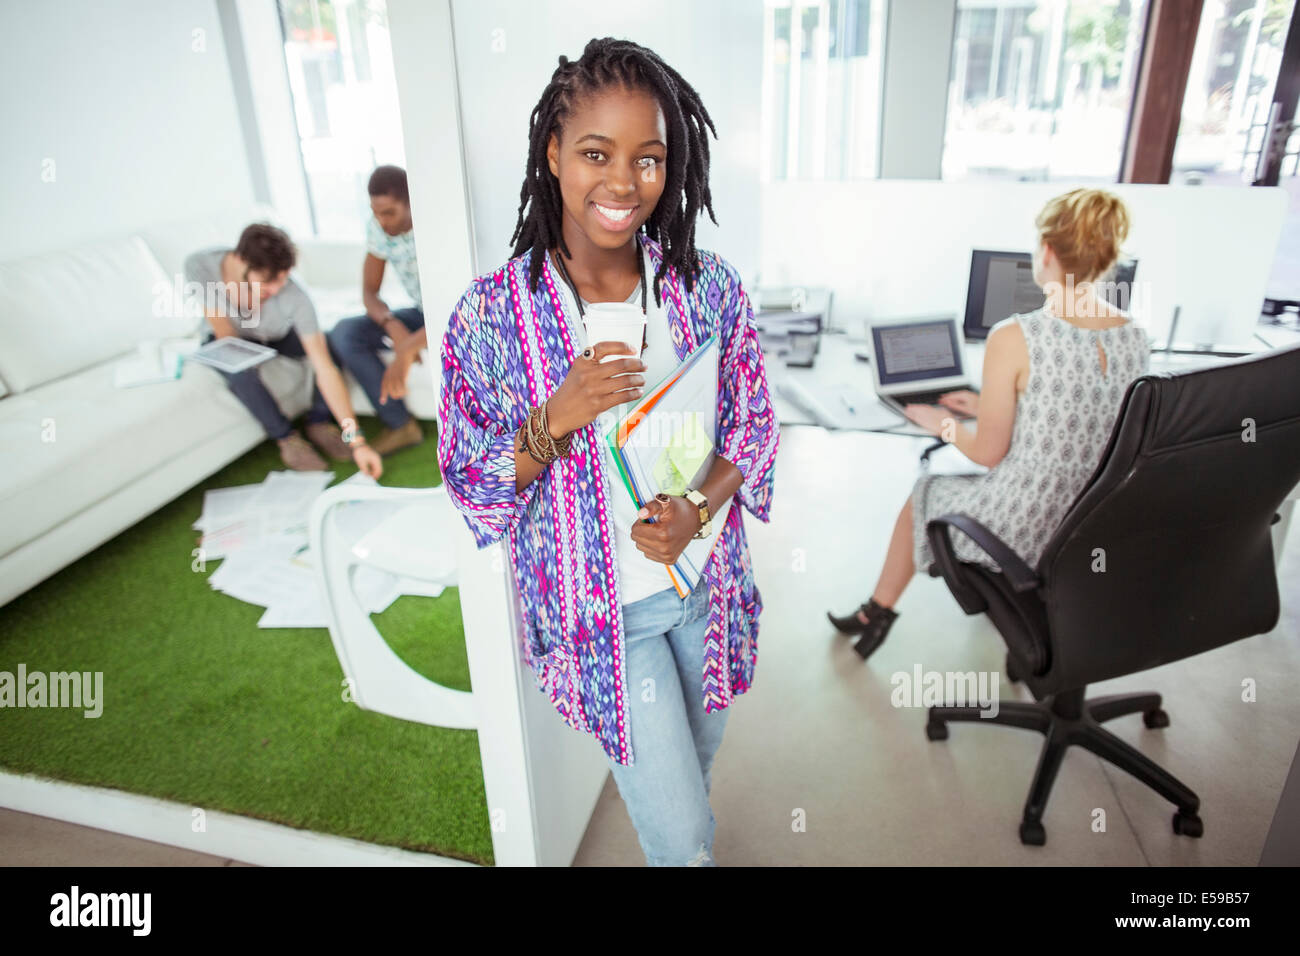 Woman drinking coffee in office - Stock Image